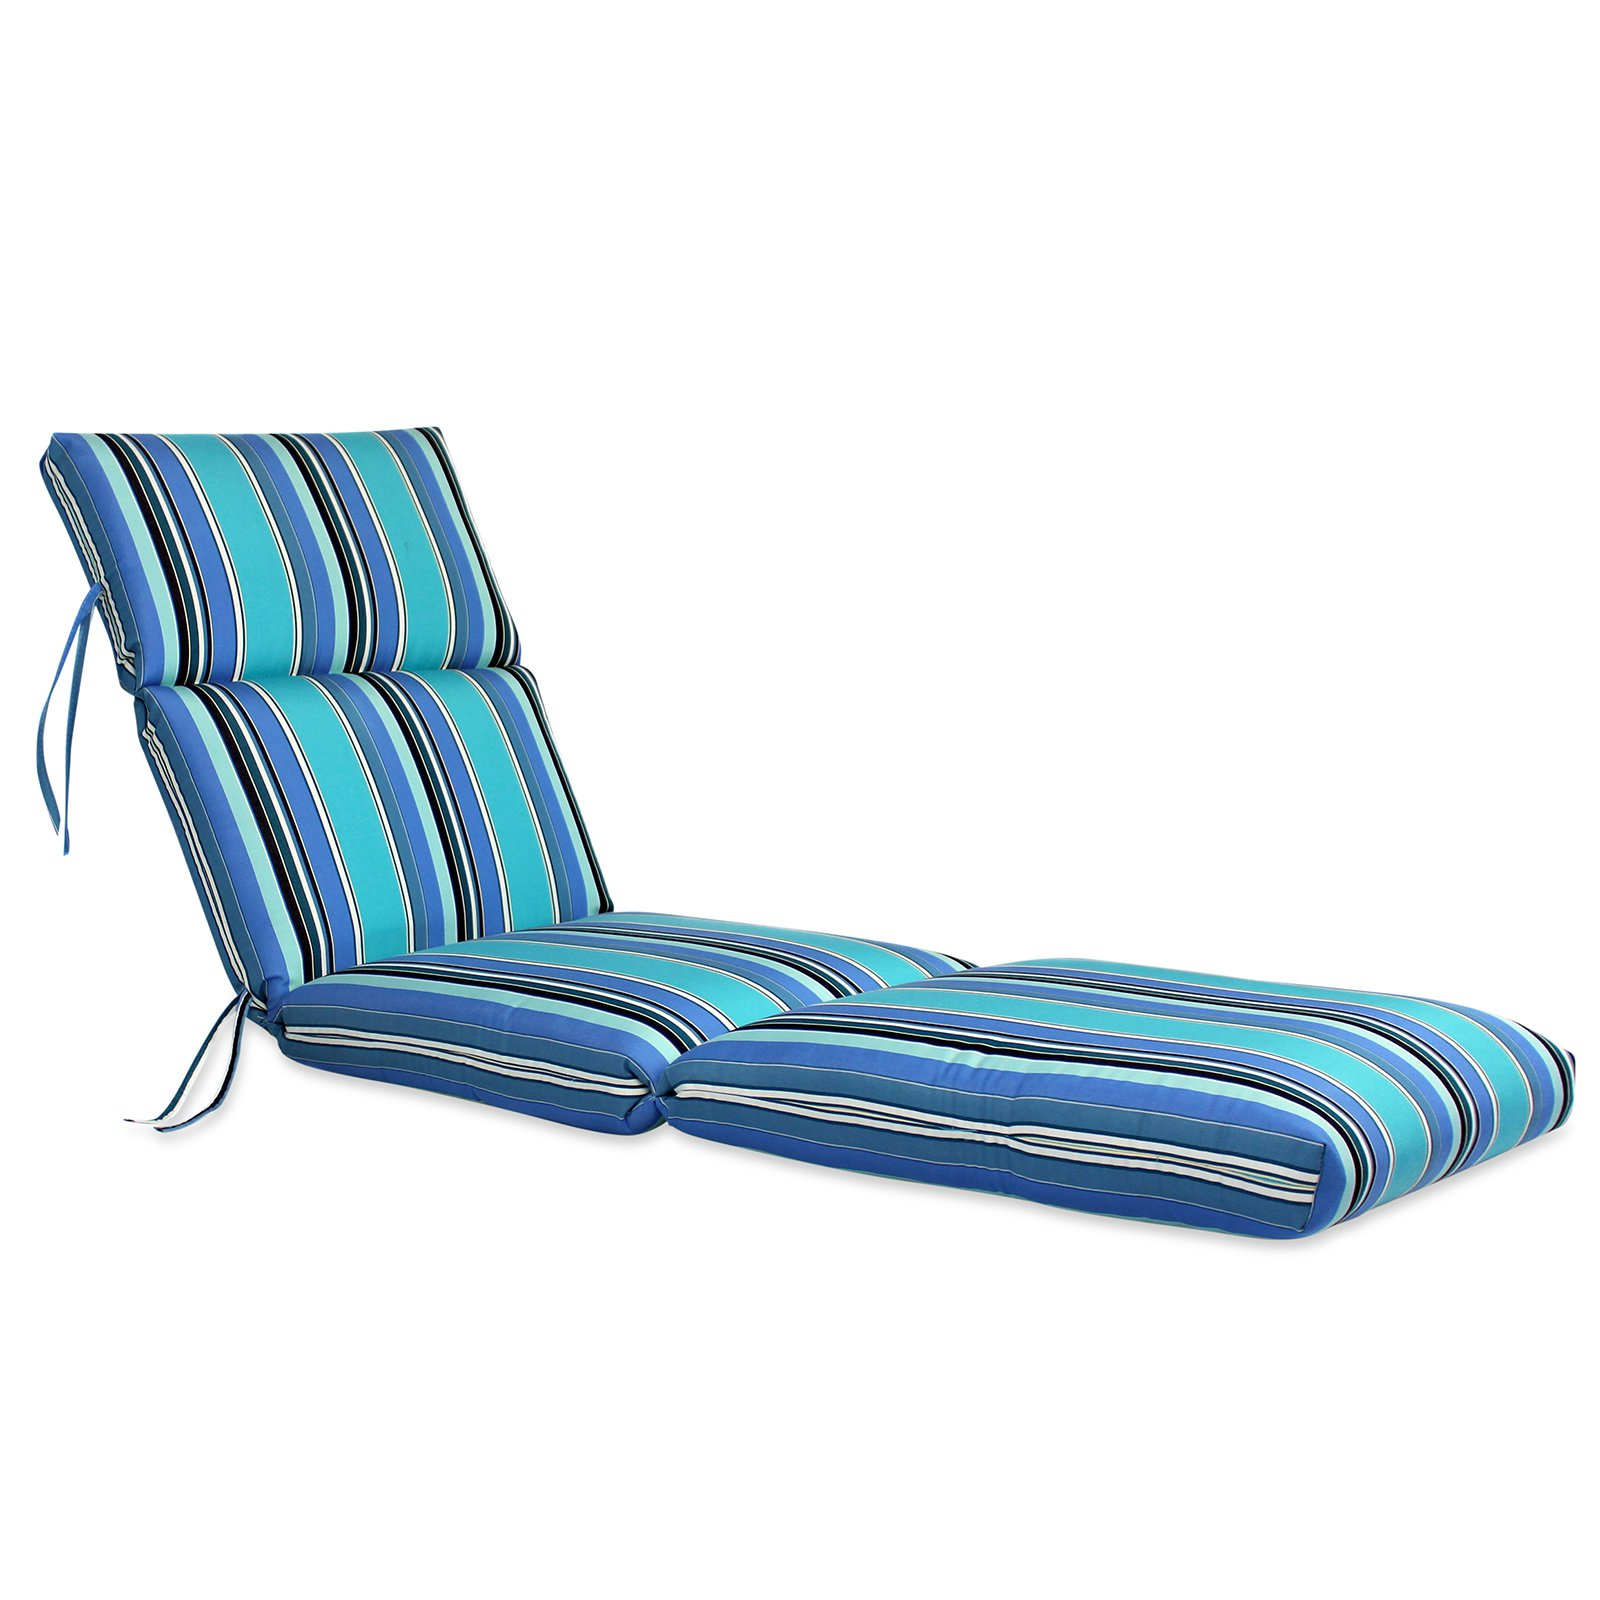 sale blue on amazon chairs dye lounge chaise walmart cushions mainstays cushion outdoor tie